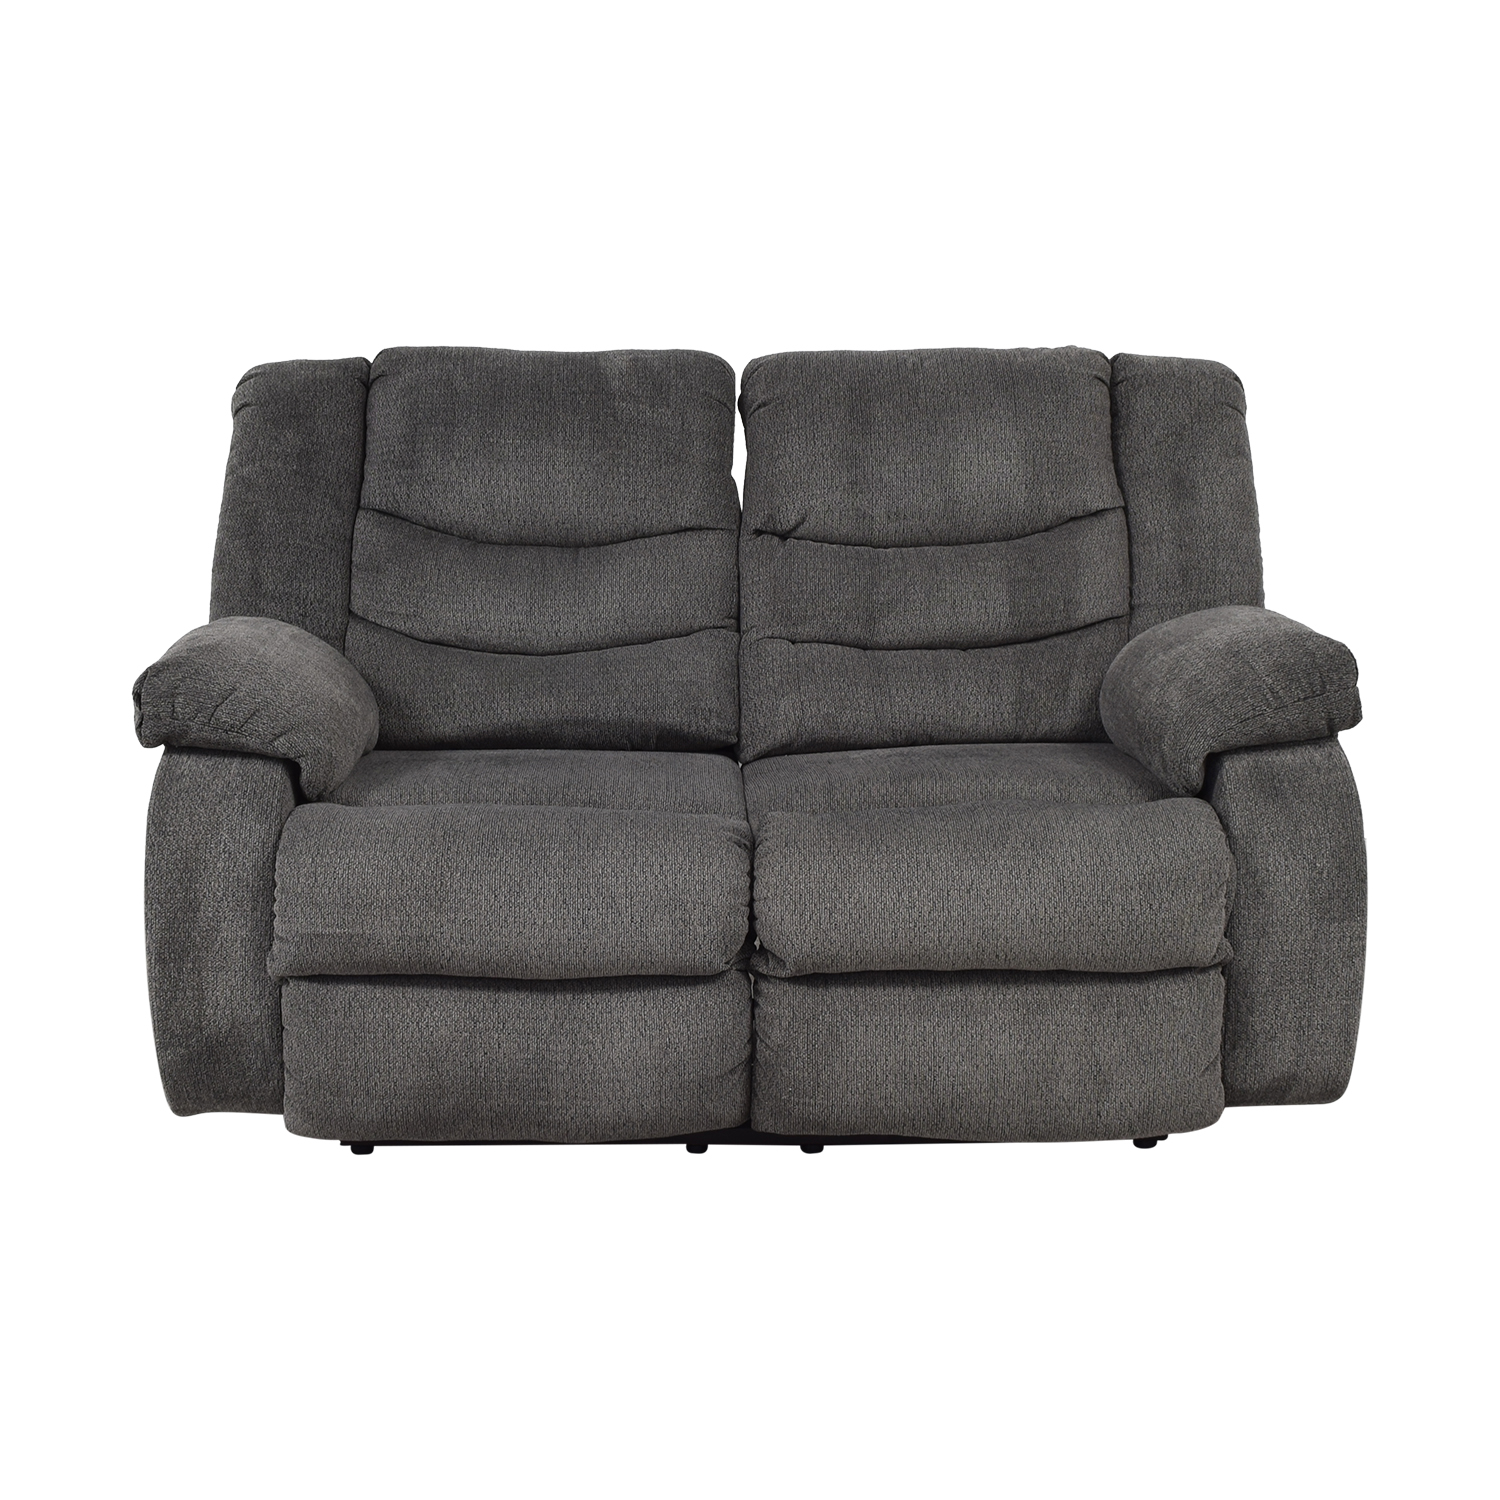 Ashley Furniture Ashley Furniture Gray Reclining Loveseat Loveseats